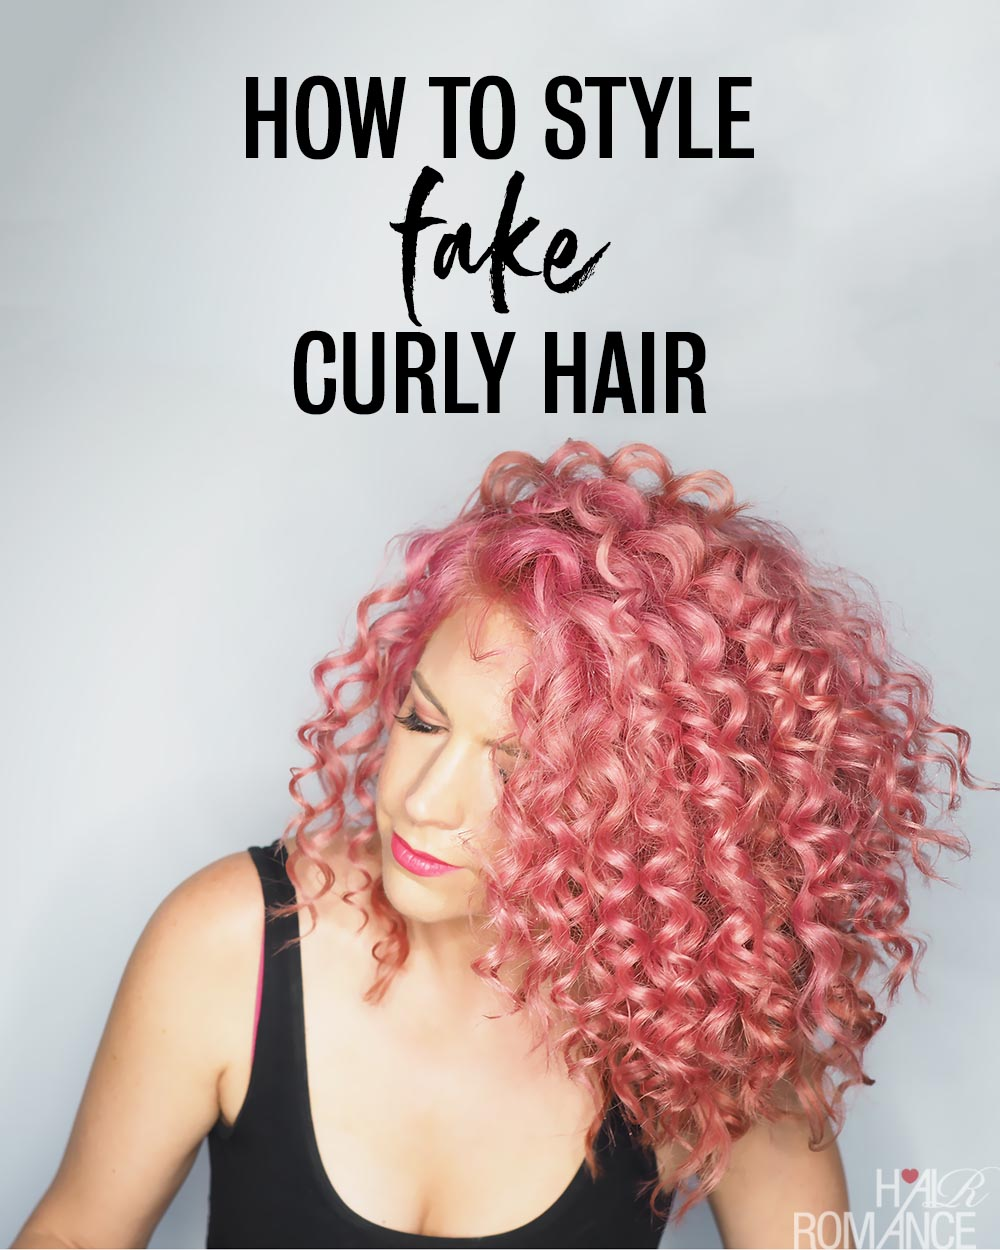 Pretend curls! How one can get hair that appears naturally curly